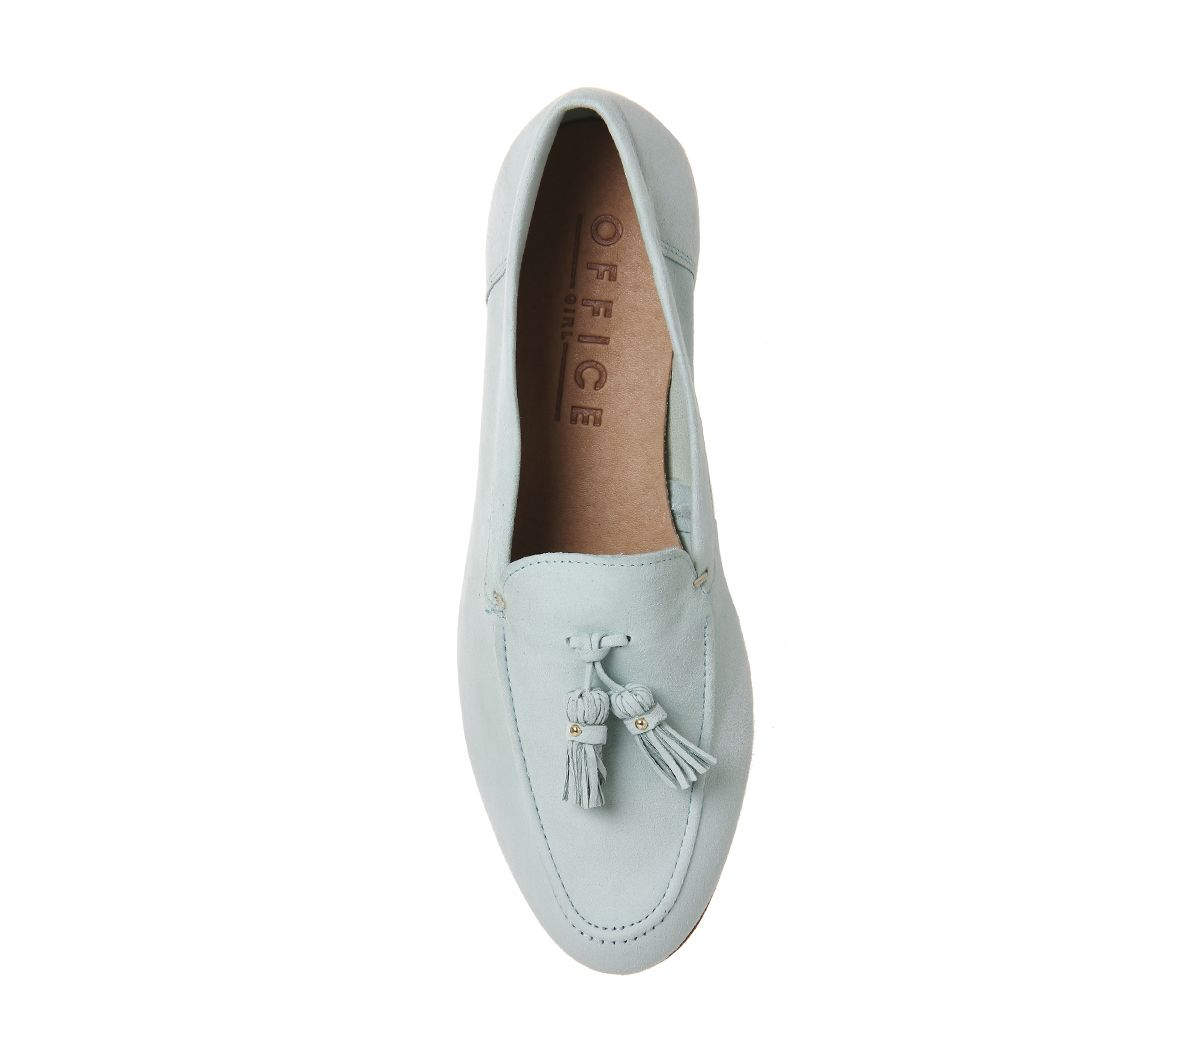 e62a72f0f77 Buy Mint Suede Office Retro Tassel Loafers from OFFICE.co.uk ...